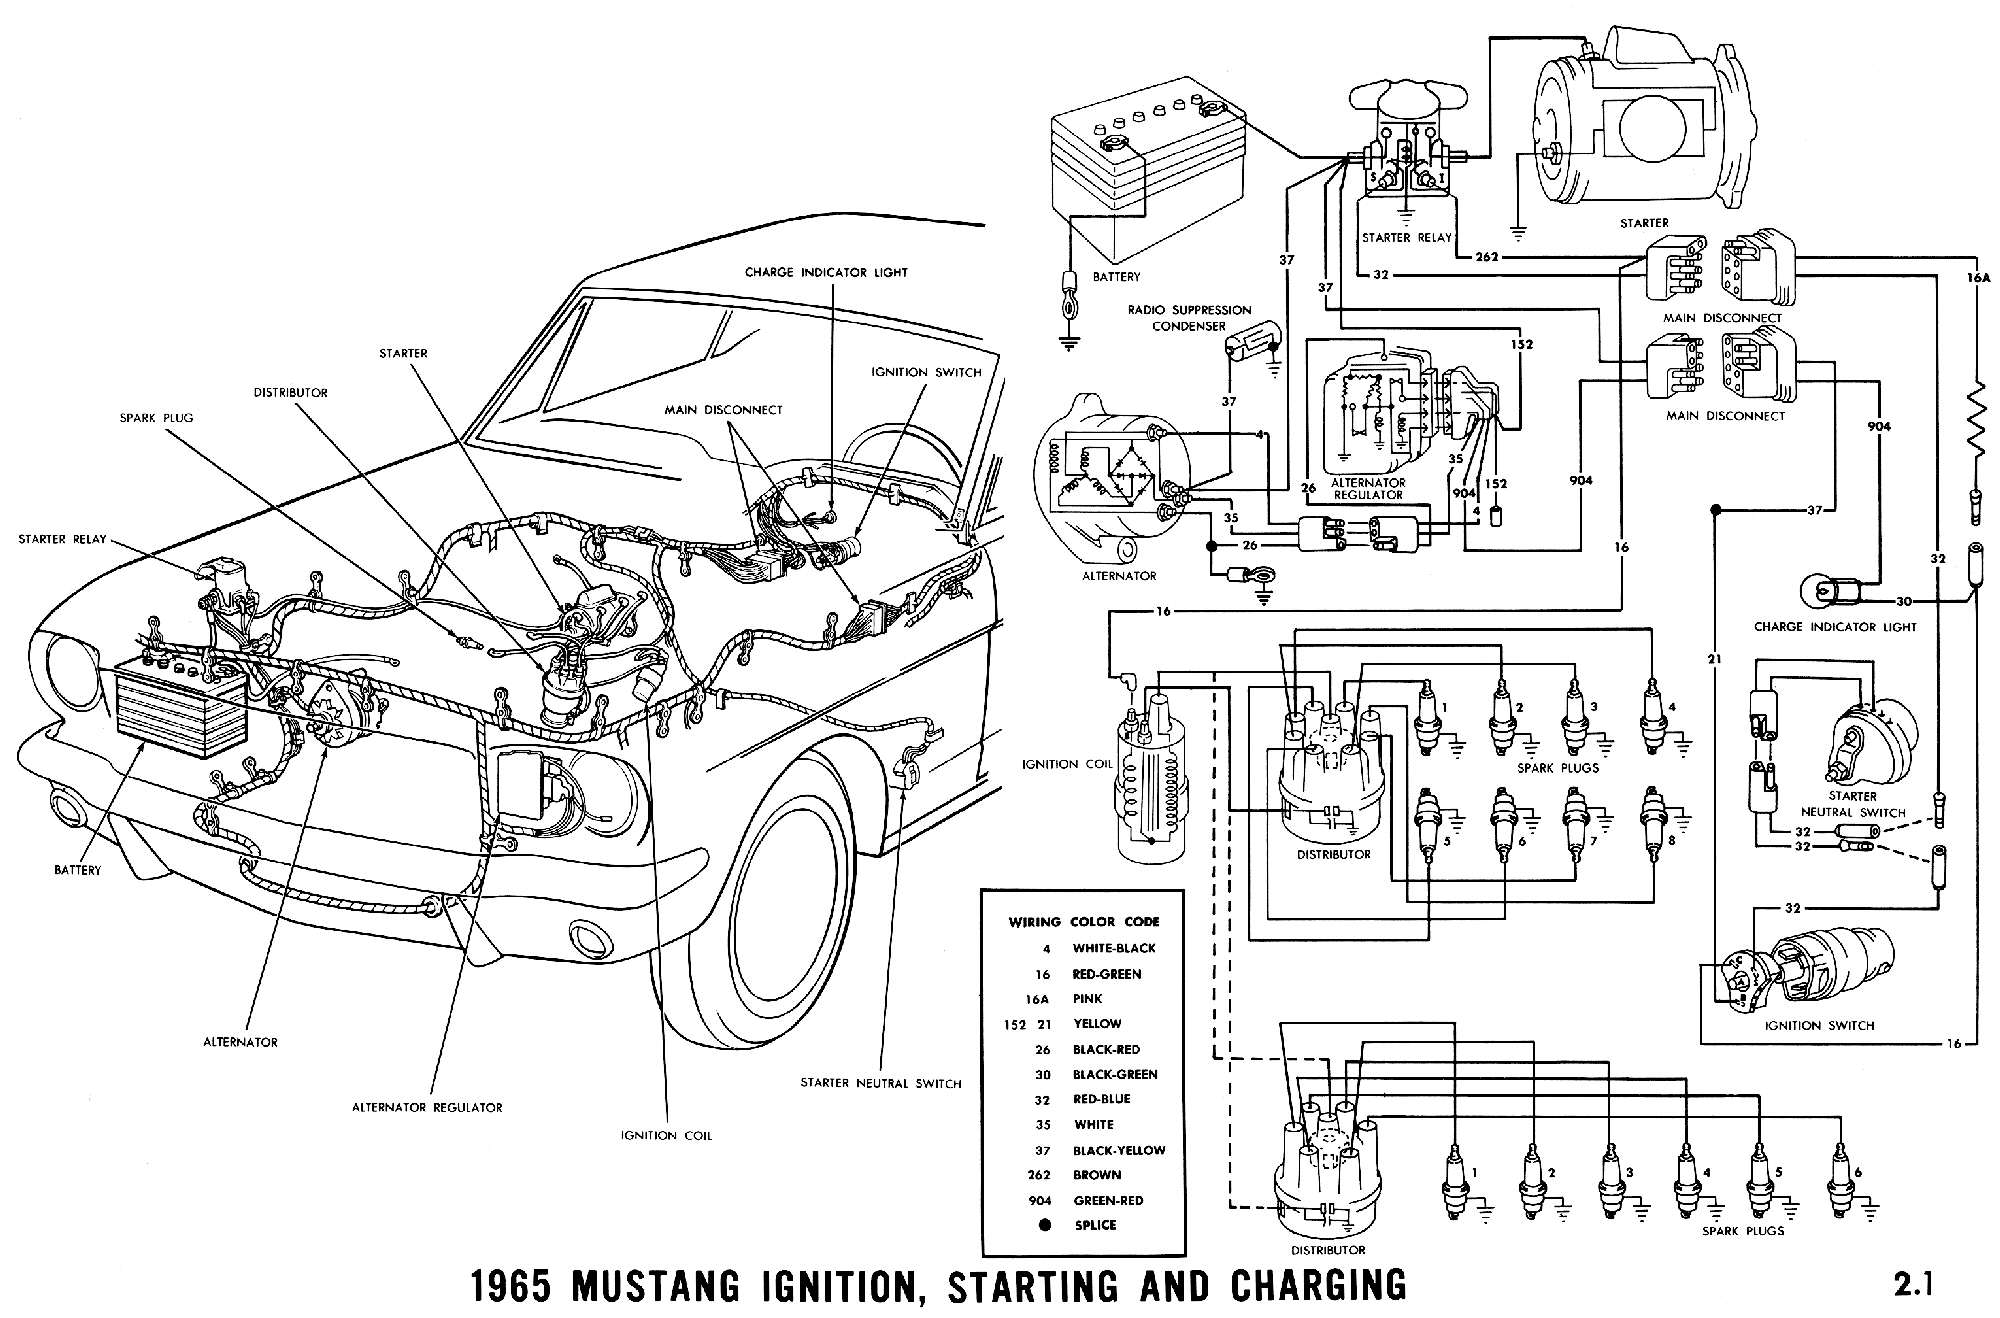 Headlight Wiring Diagram 1969 Mustang Headlight Free